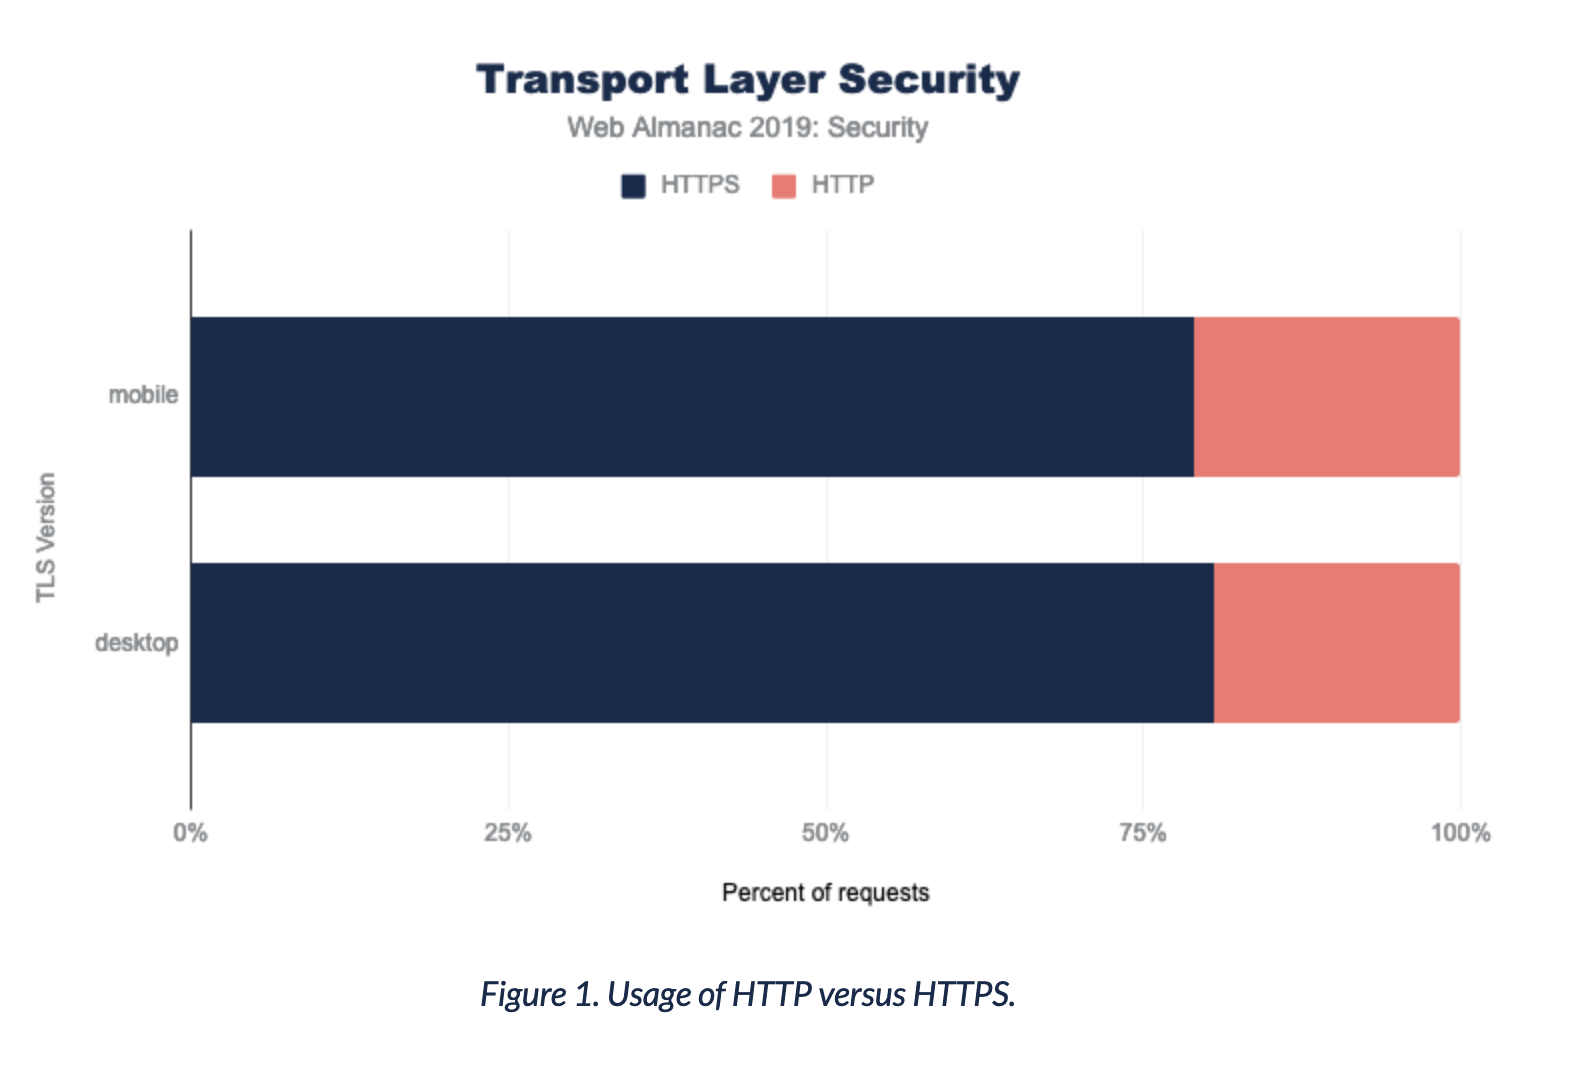 Chart showing that 80% of sites are served via HTTPS (mobile and desktop)